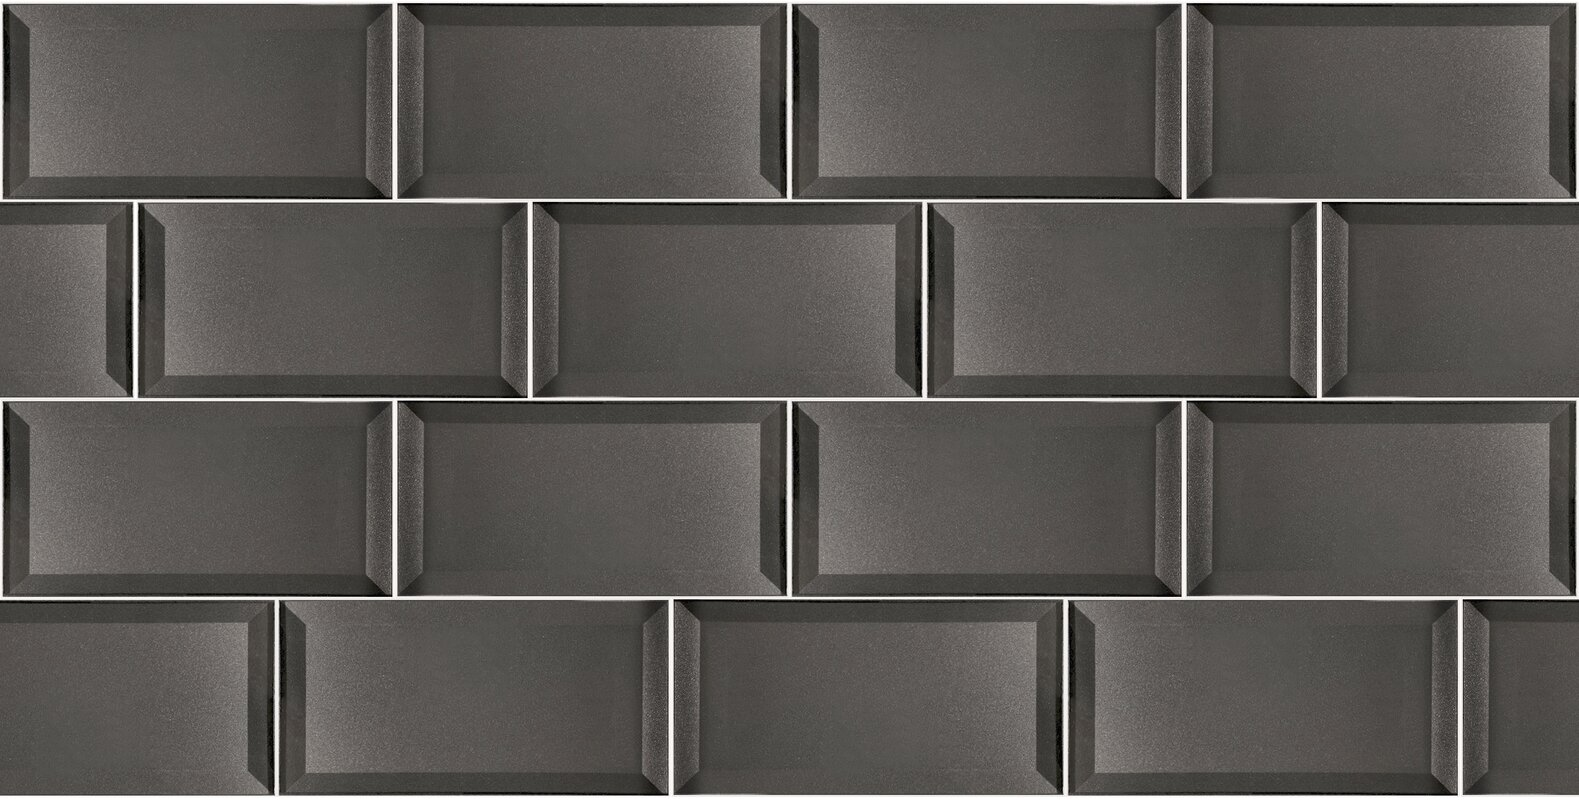 Abolos secret dimensions 3 x 6 glass subway tile in glossy gray secret dimensions 3 x 6 glass subway tile in glossy gray dailygadgetfo Images